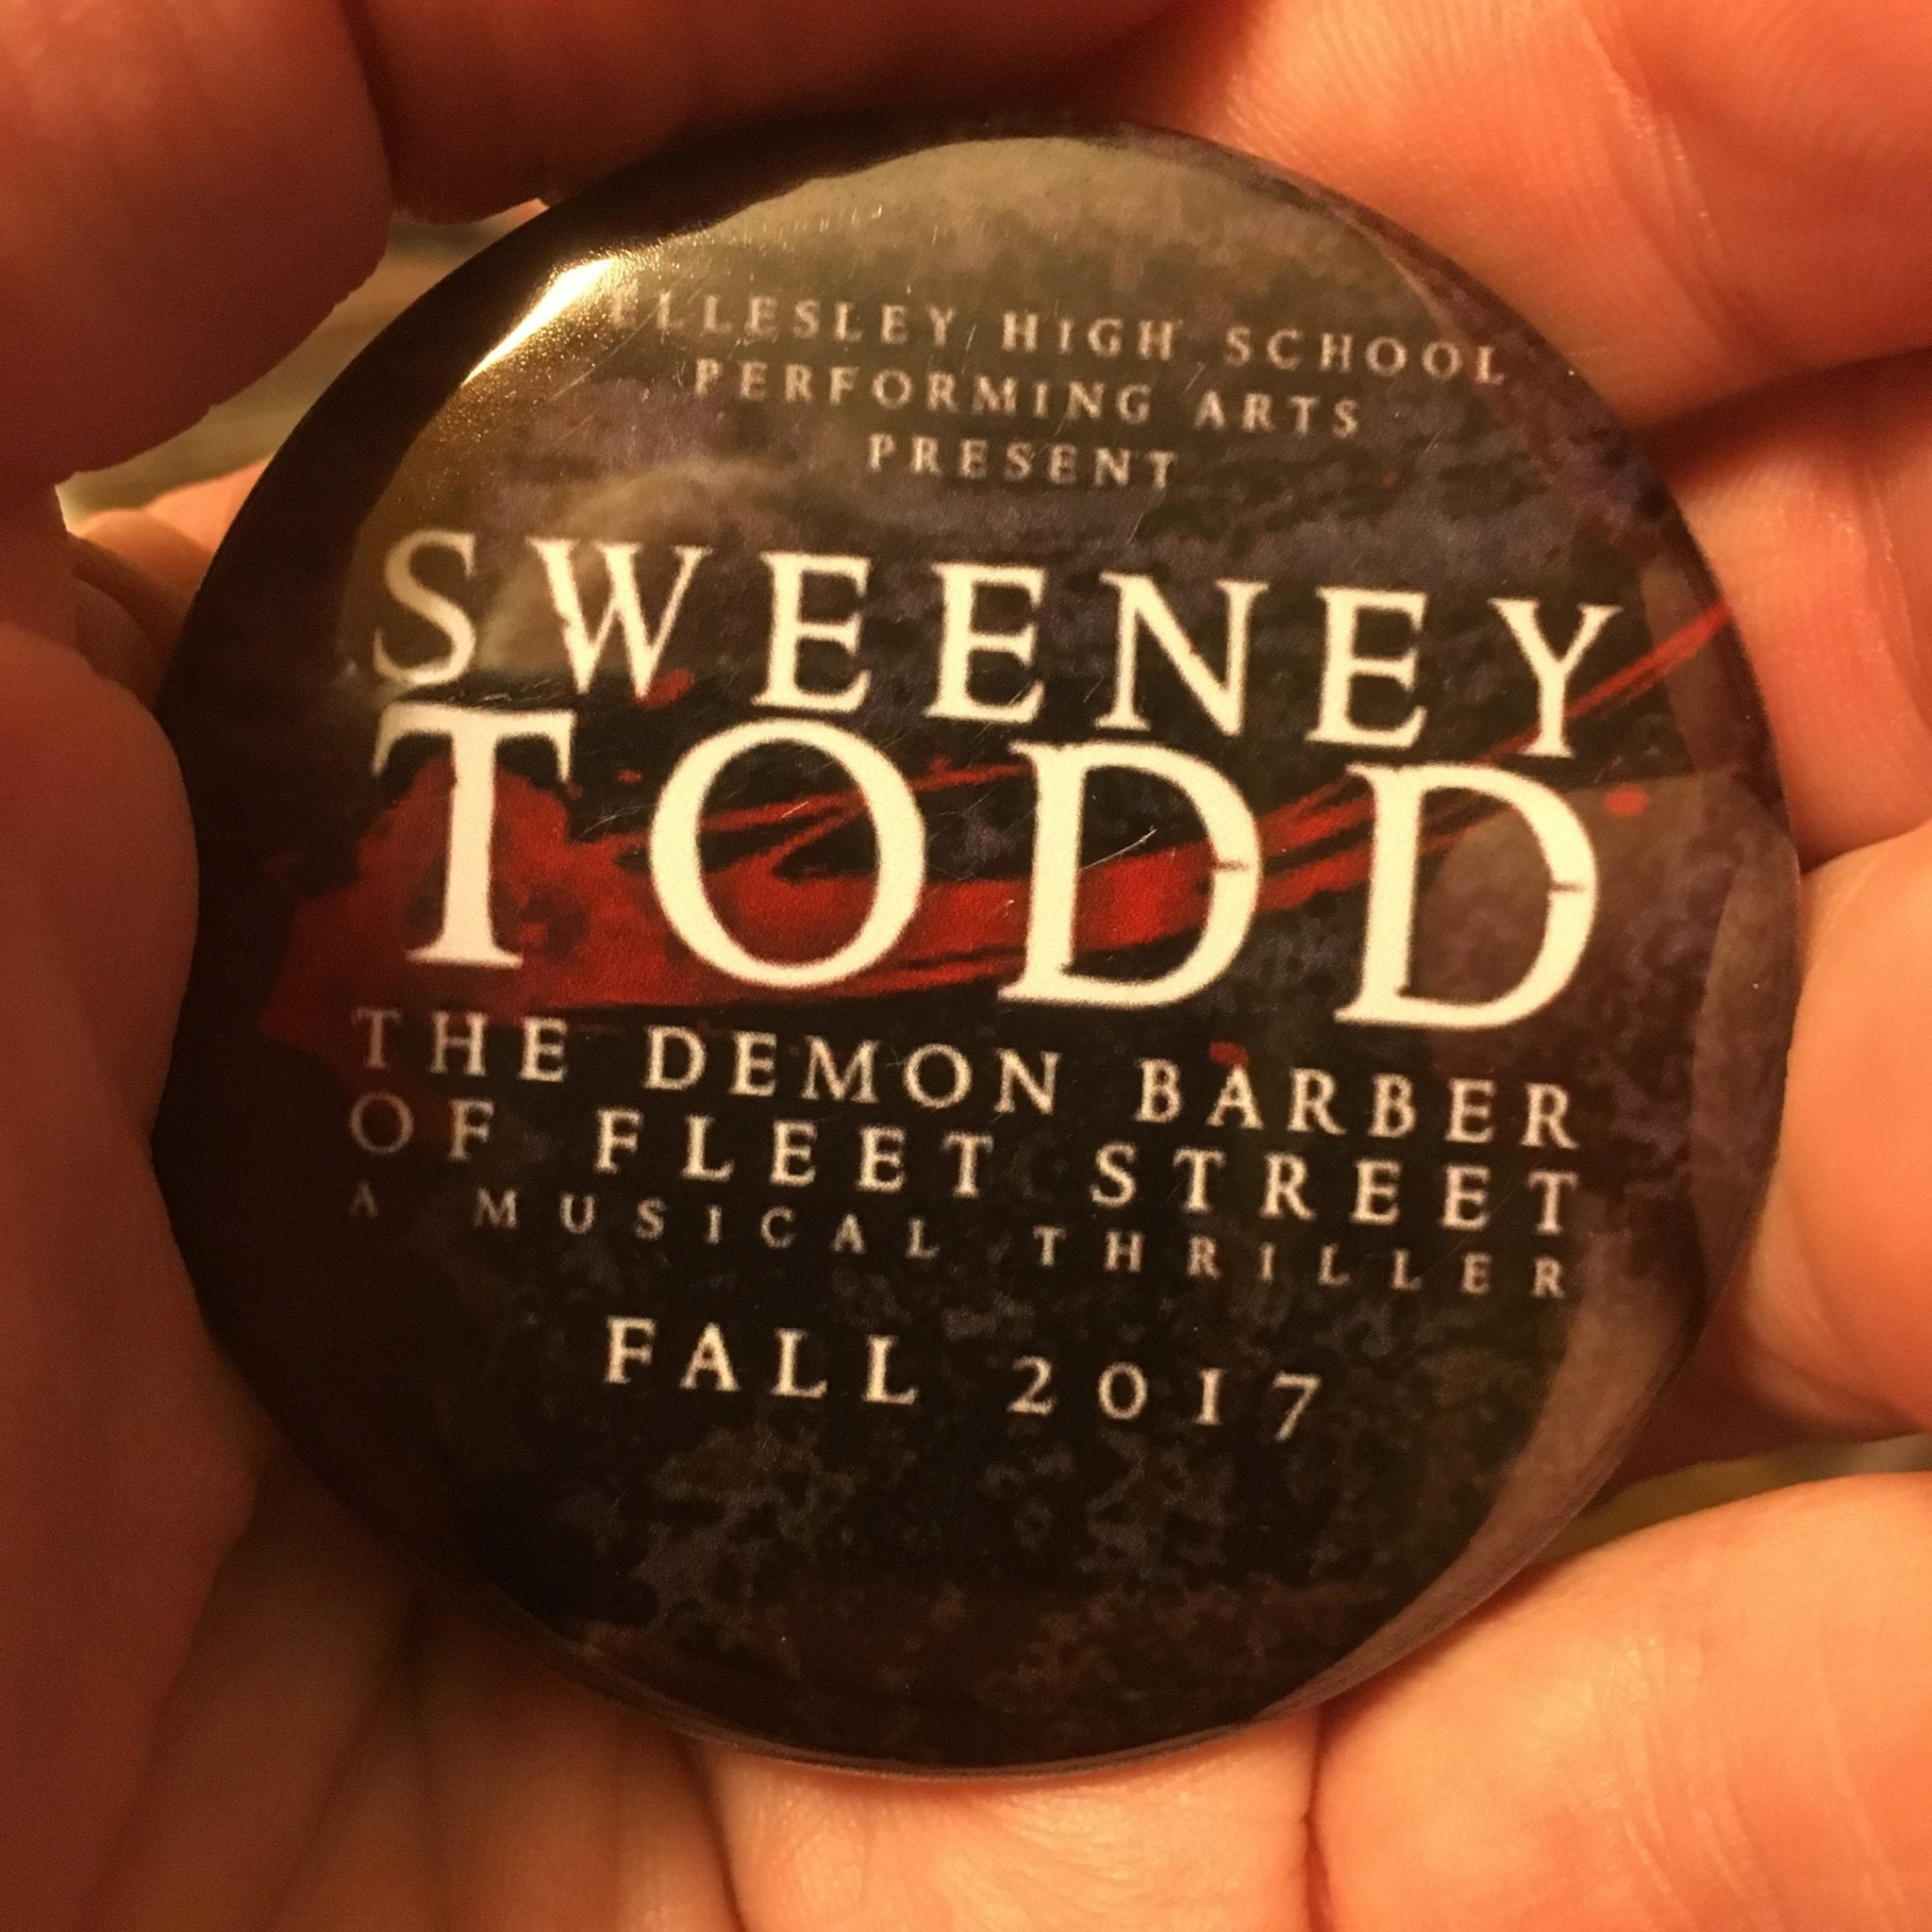 Wellesley High's Sweeney Todd